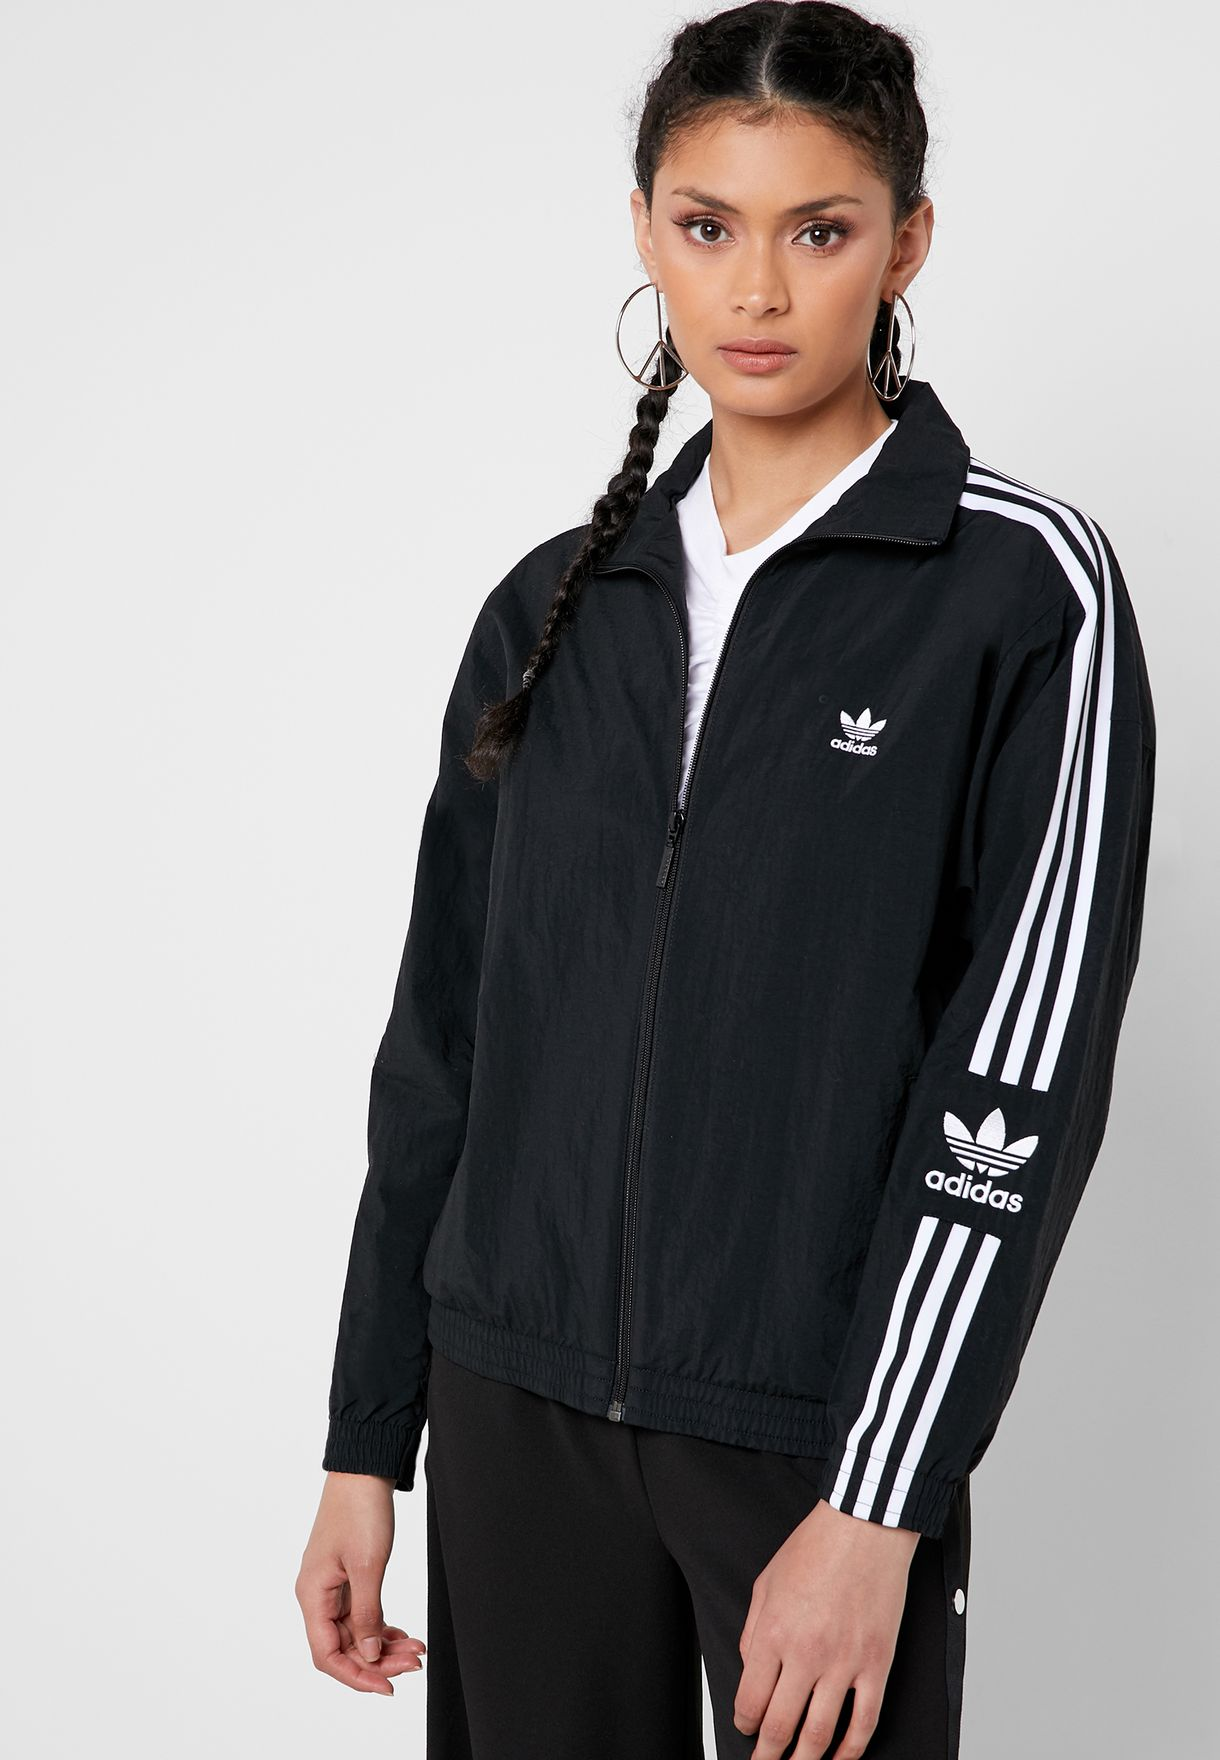 Adidas Original Womens Track Jacket ED7538 Black Three Stripes Lock Up TT Jacket